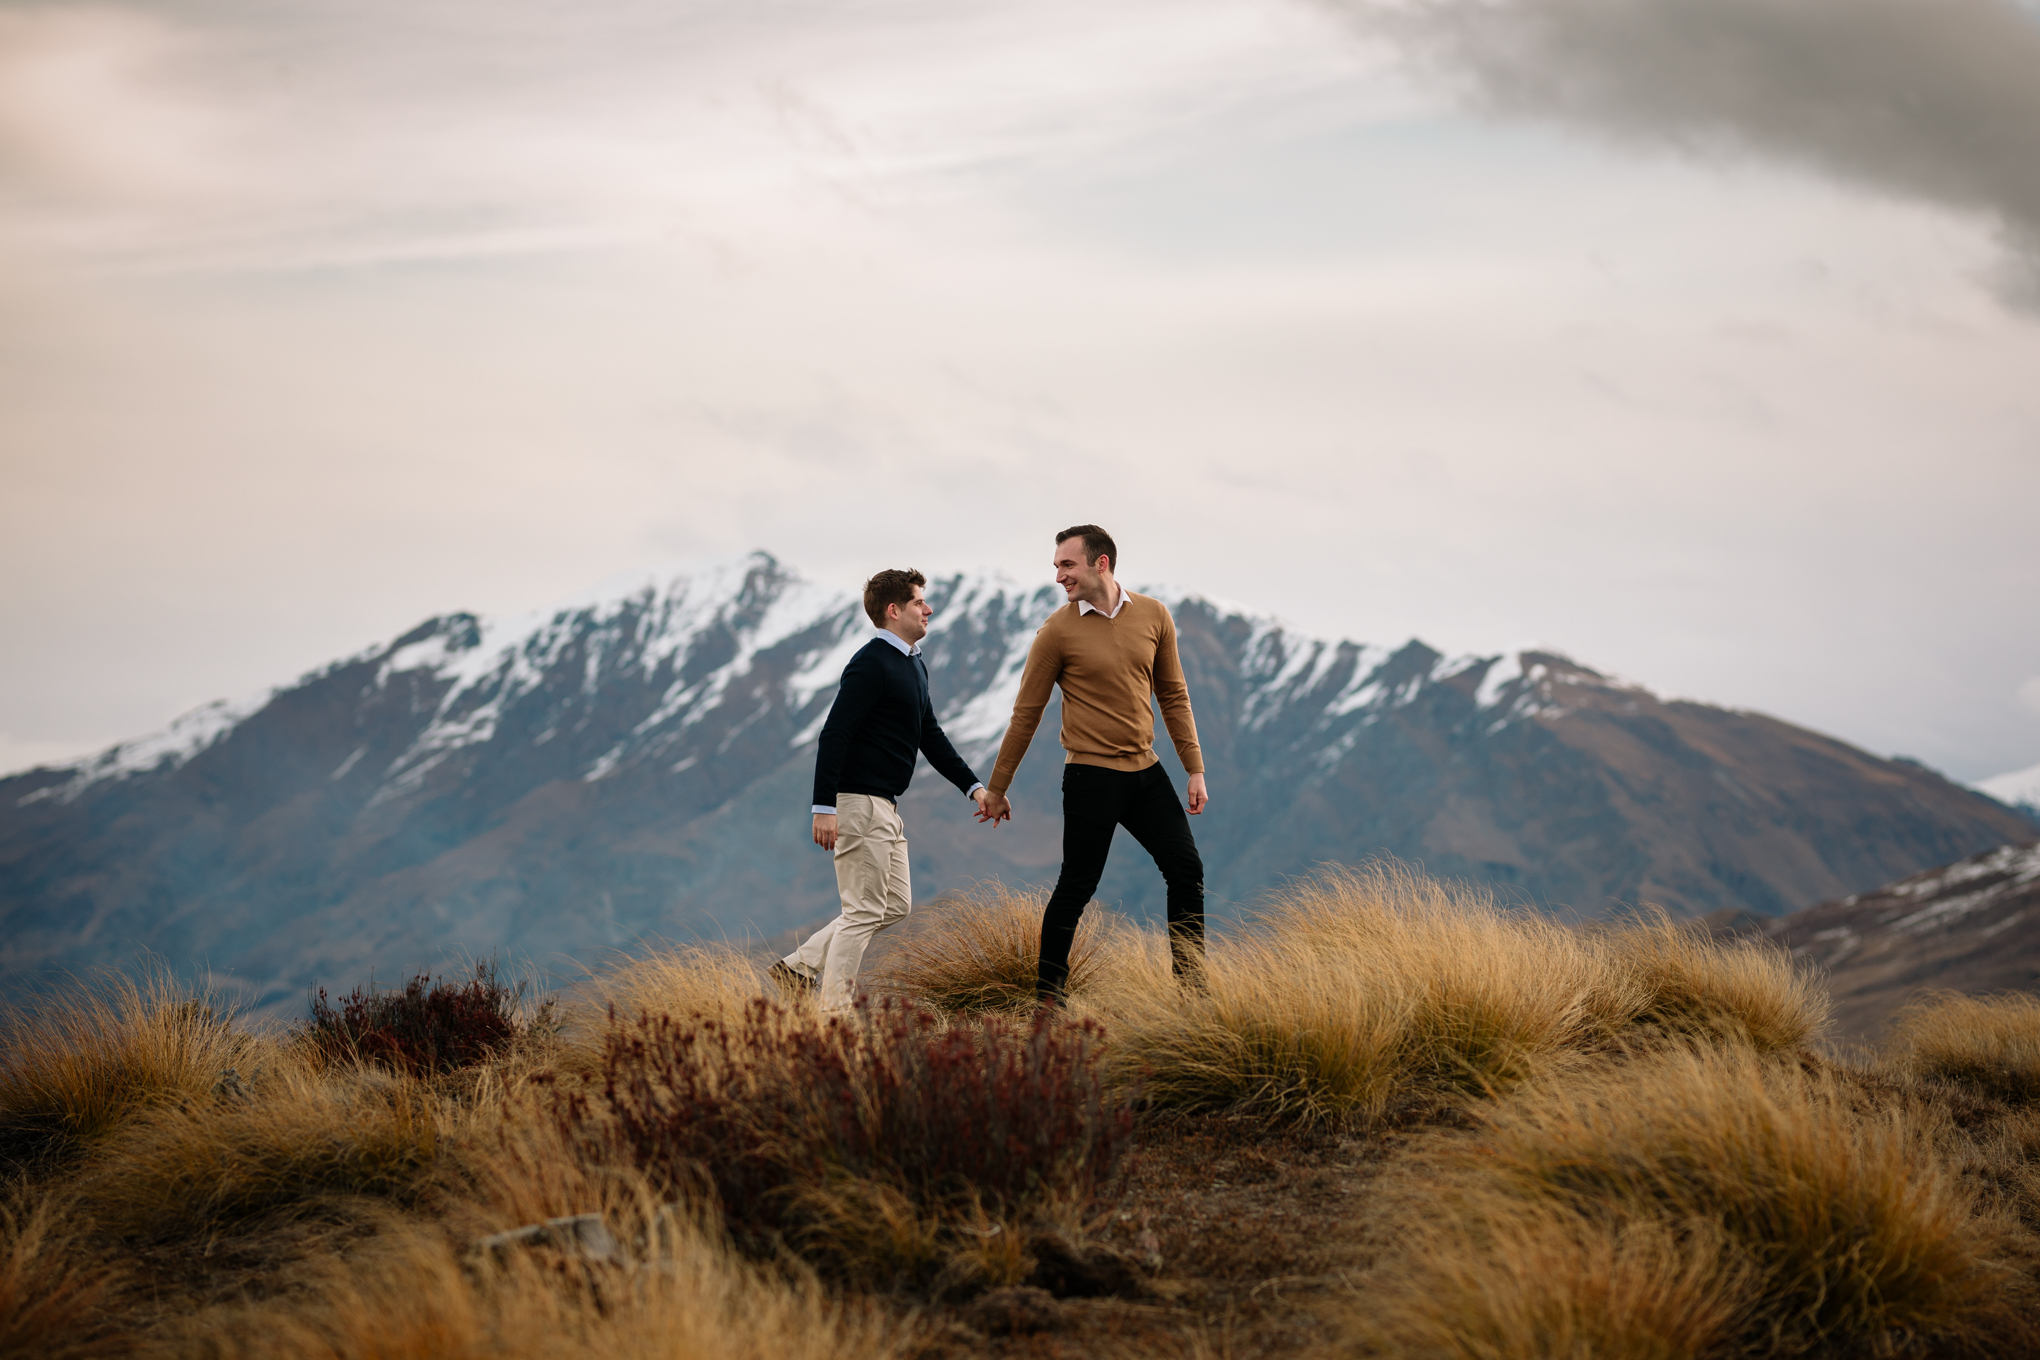 queenstownengagement-79.jpg